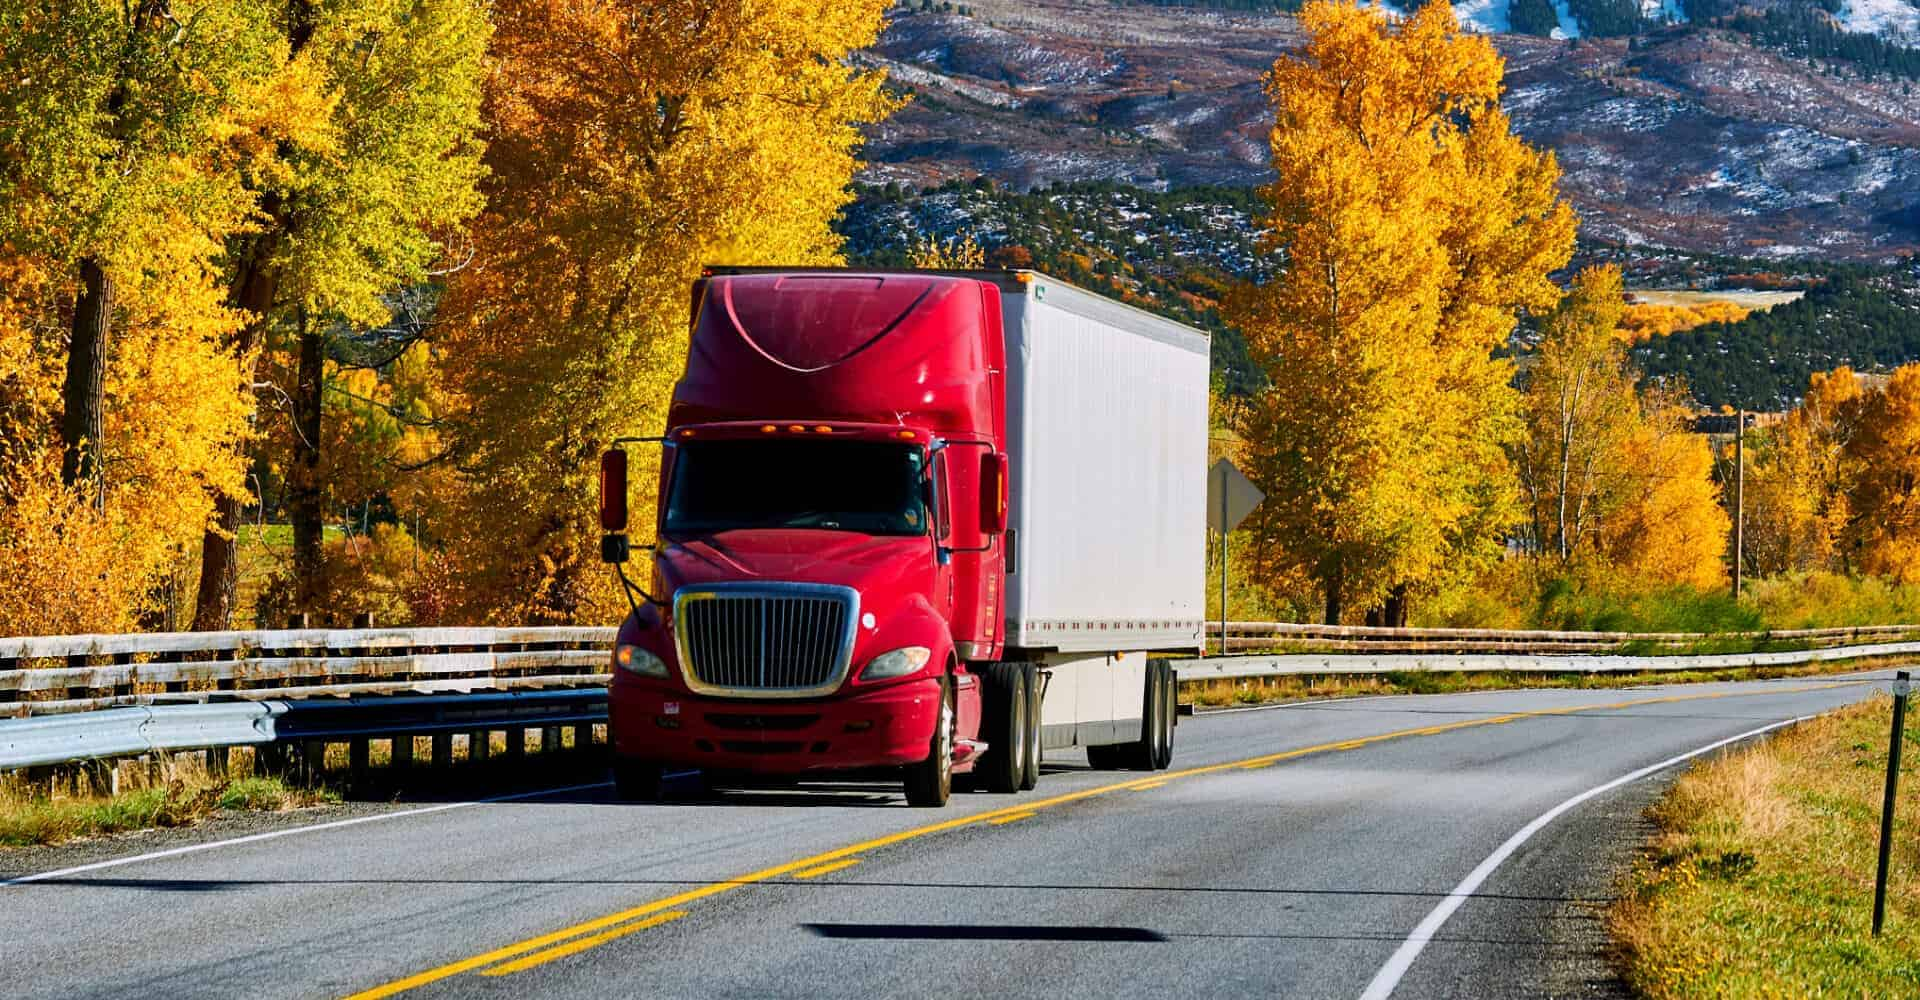 In bulk or broken down for individual delivery or multiple locations by truck, plane, air or home delivery.